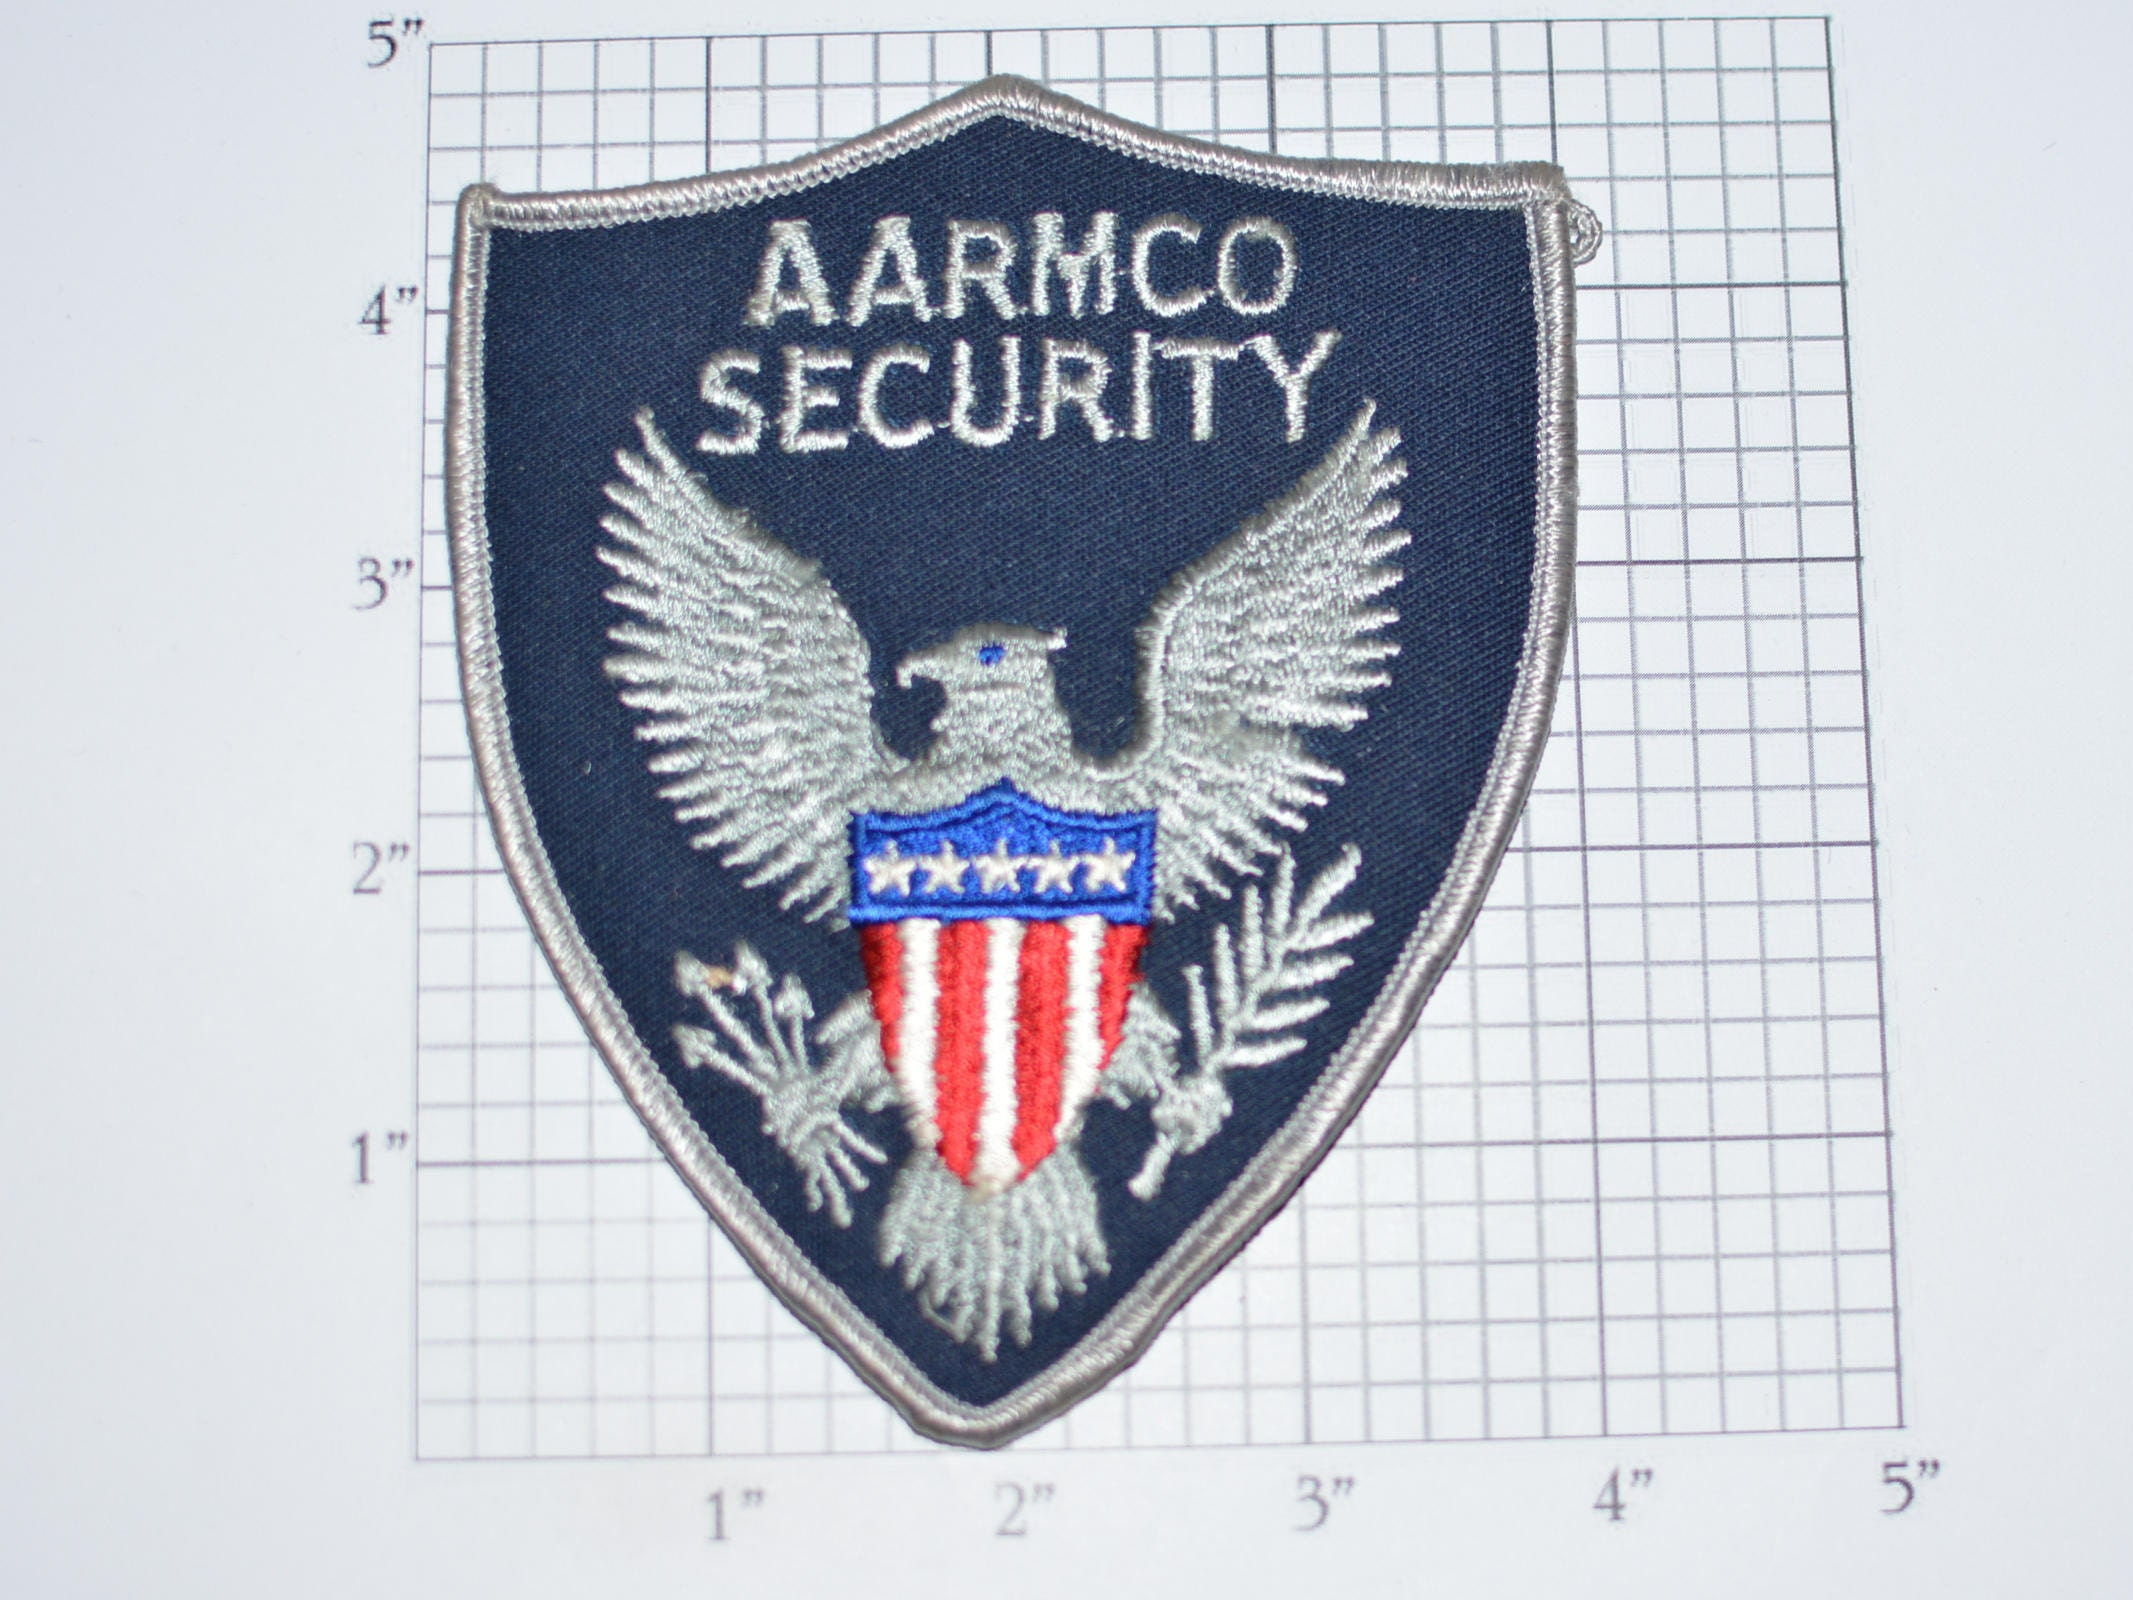 Aarmco security iron on vintage embroidered uniform shoulder patch aarmco security iron on vintage embroidered uniform shoulder patch for jacket vest shirt costume cosplay guard eagle shield arrow usa e30q buycottarizona Gallery